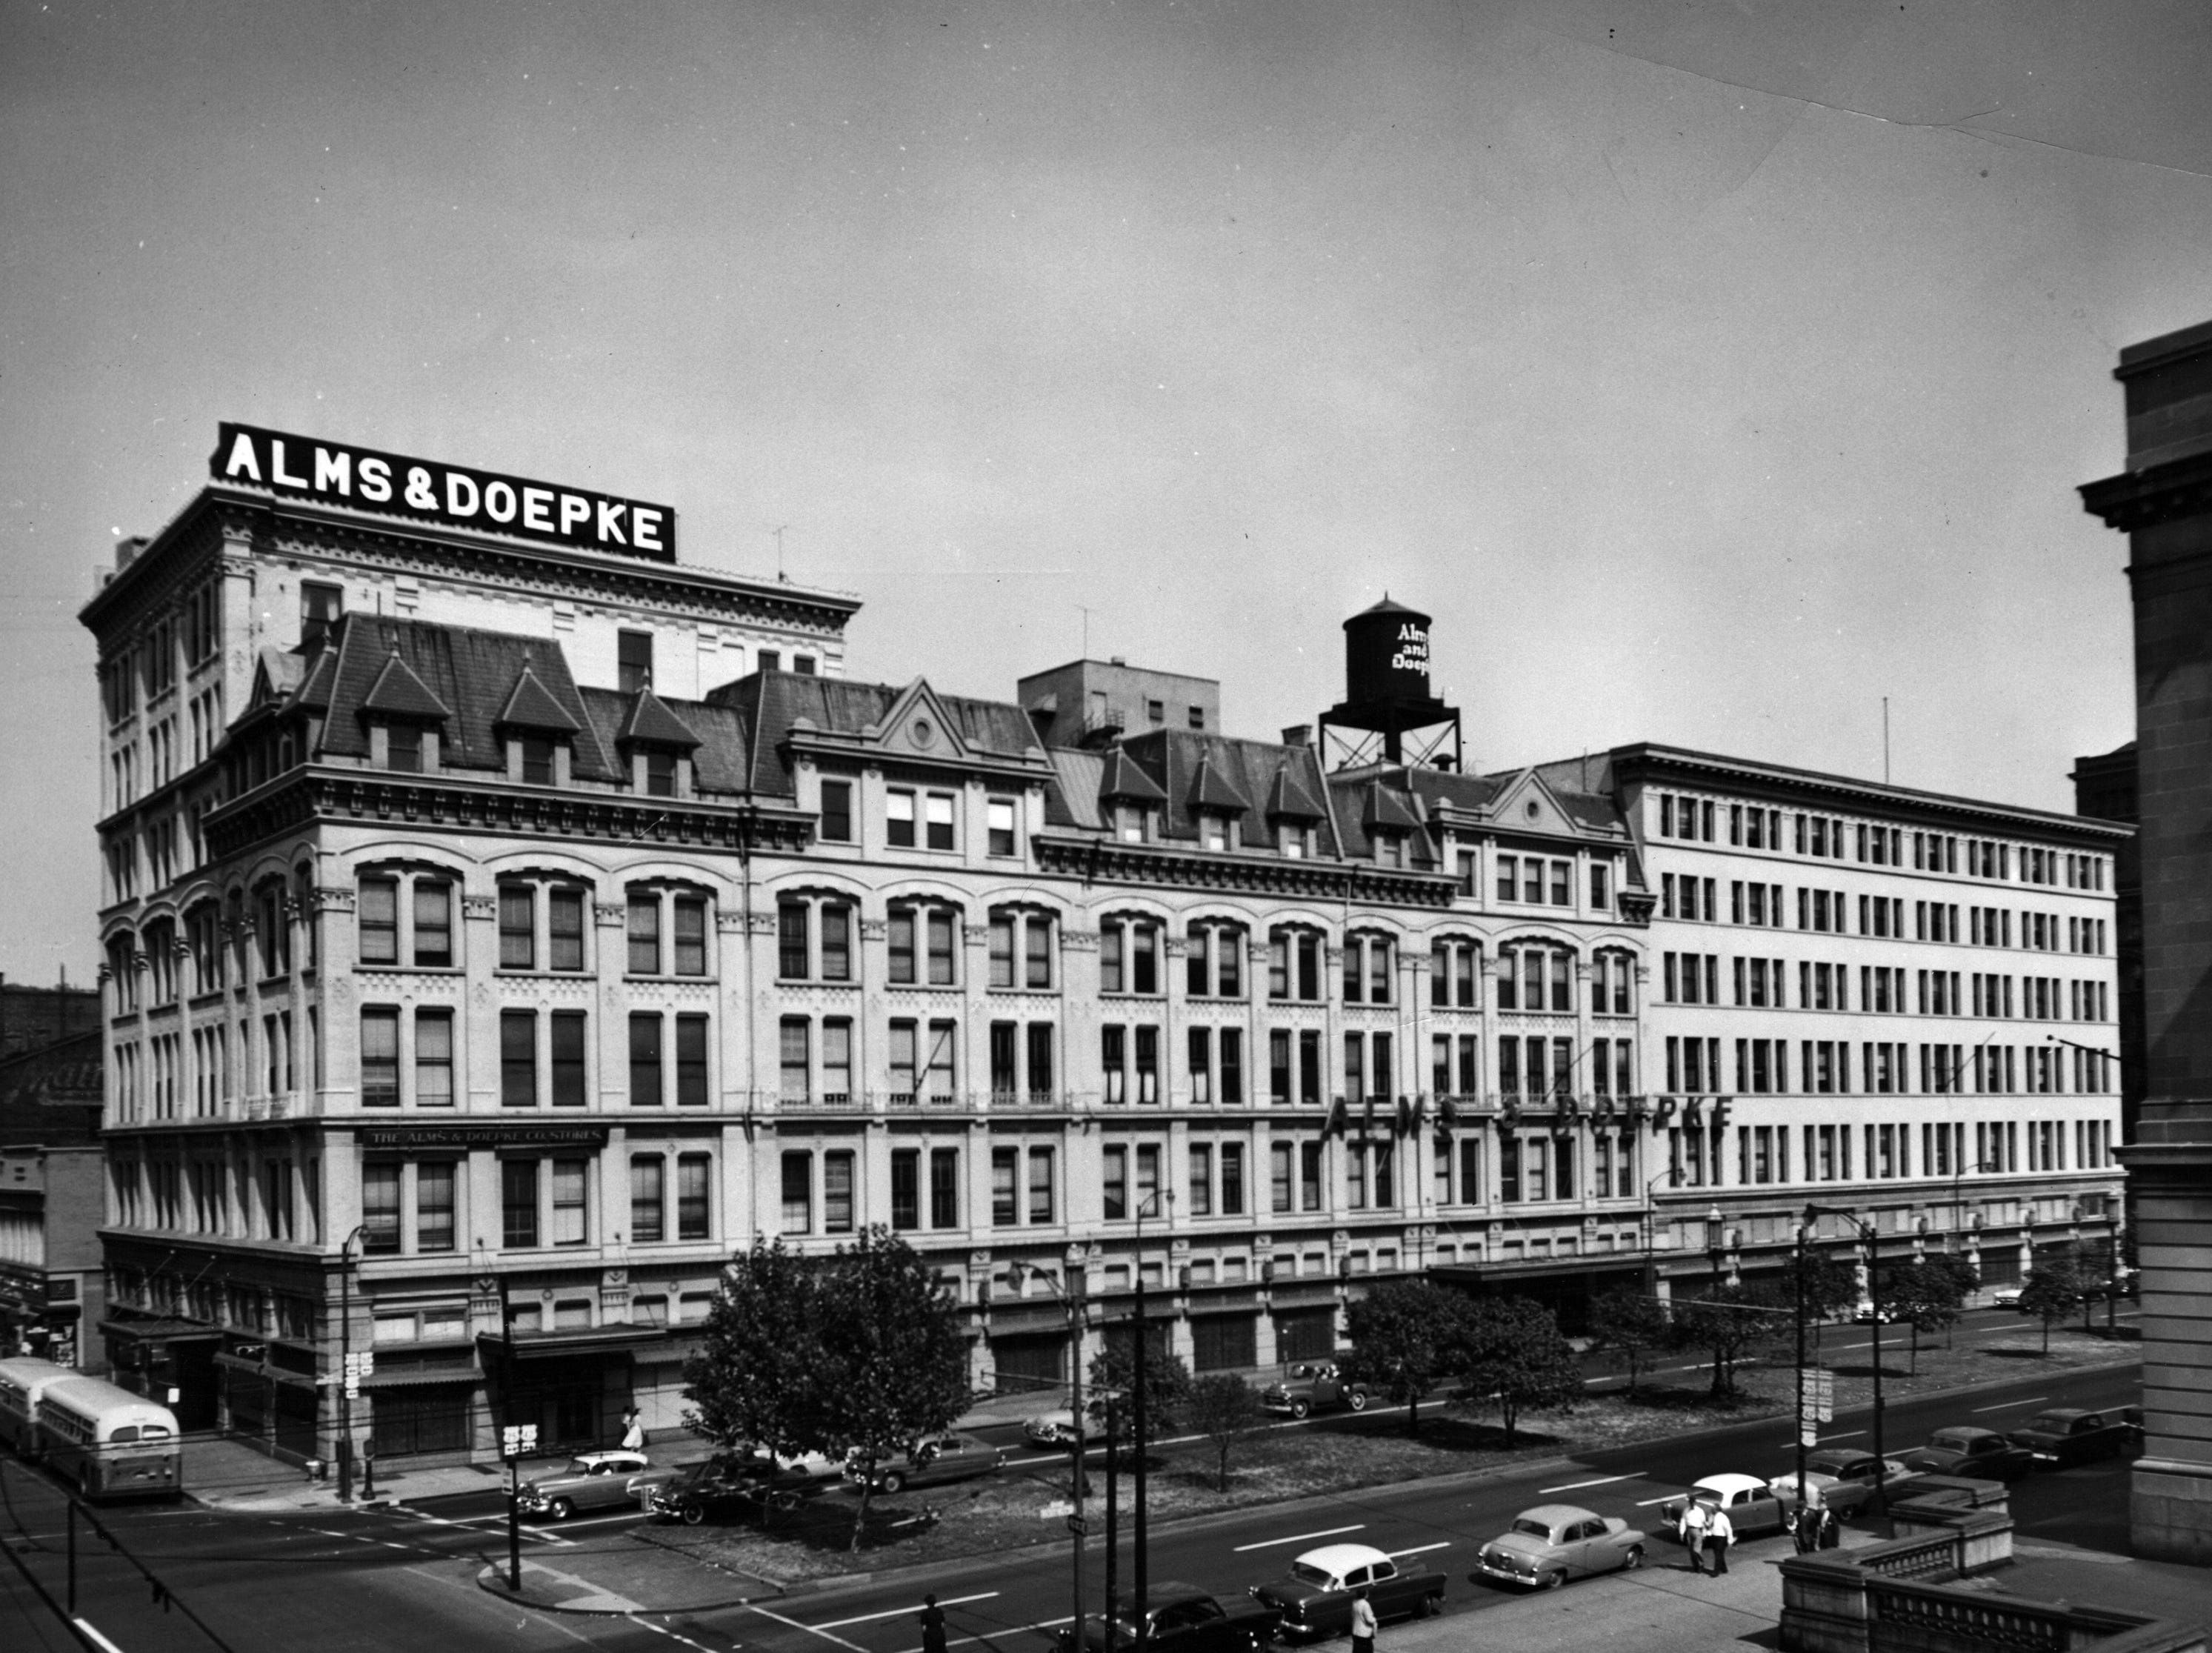 The Alms & Doepke department store, shown here in 1955, filled an entire block along Central Parkway from Main to Sycamore. The massive store was built in stages, with buildings designed by Samuel Hannaford and Daniel Burnham.